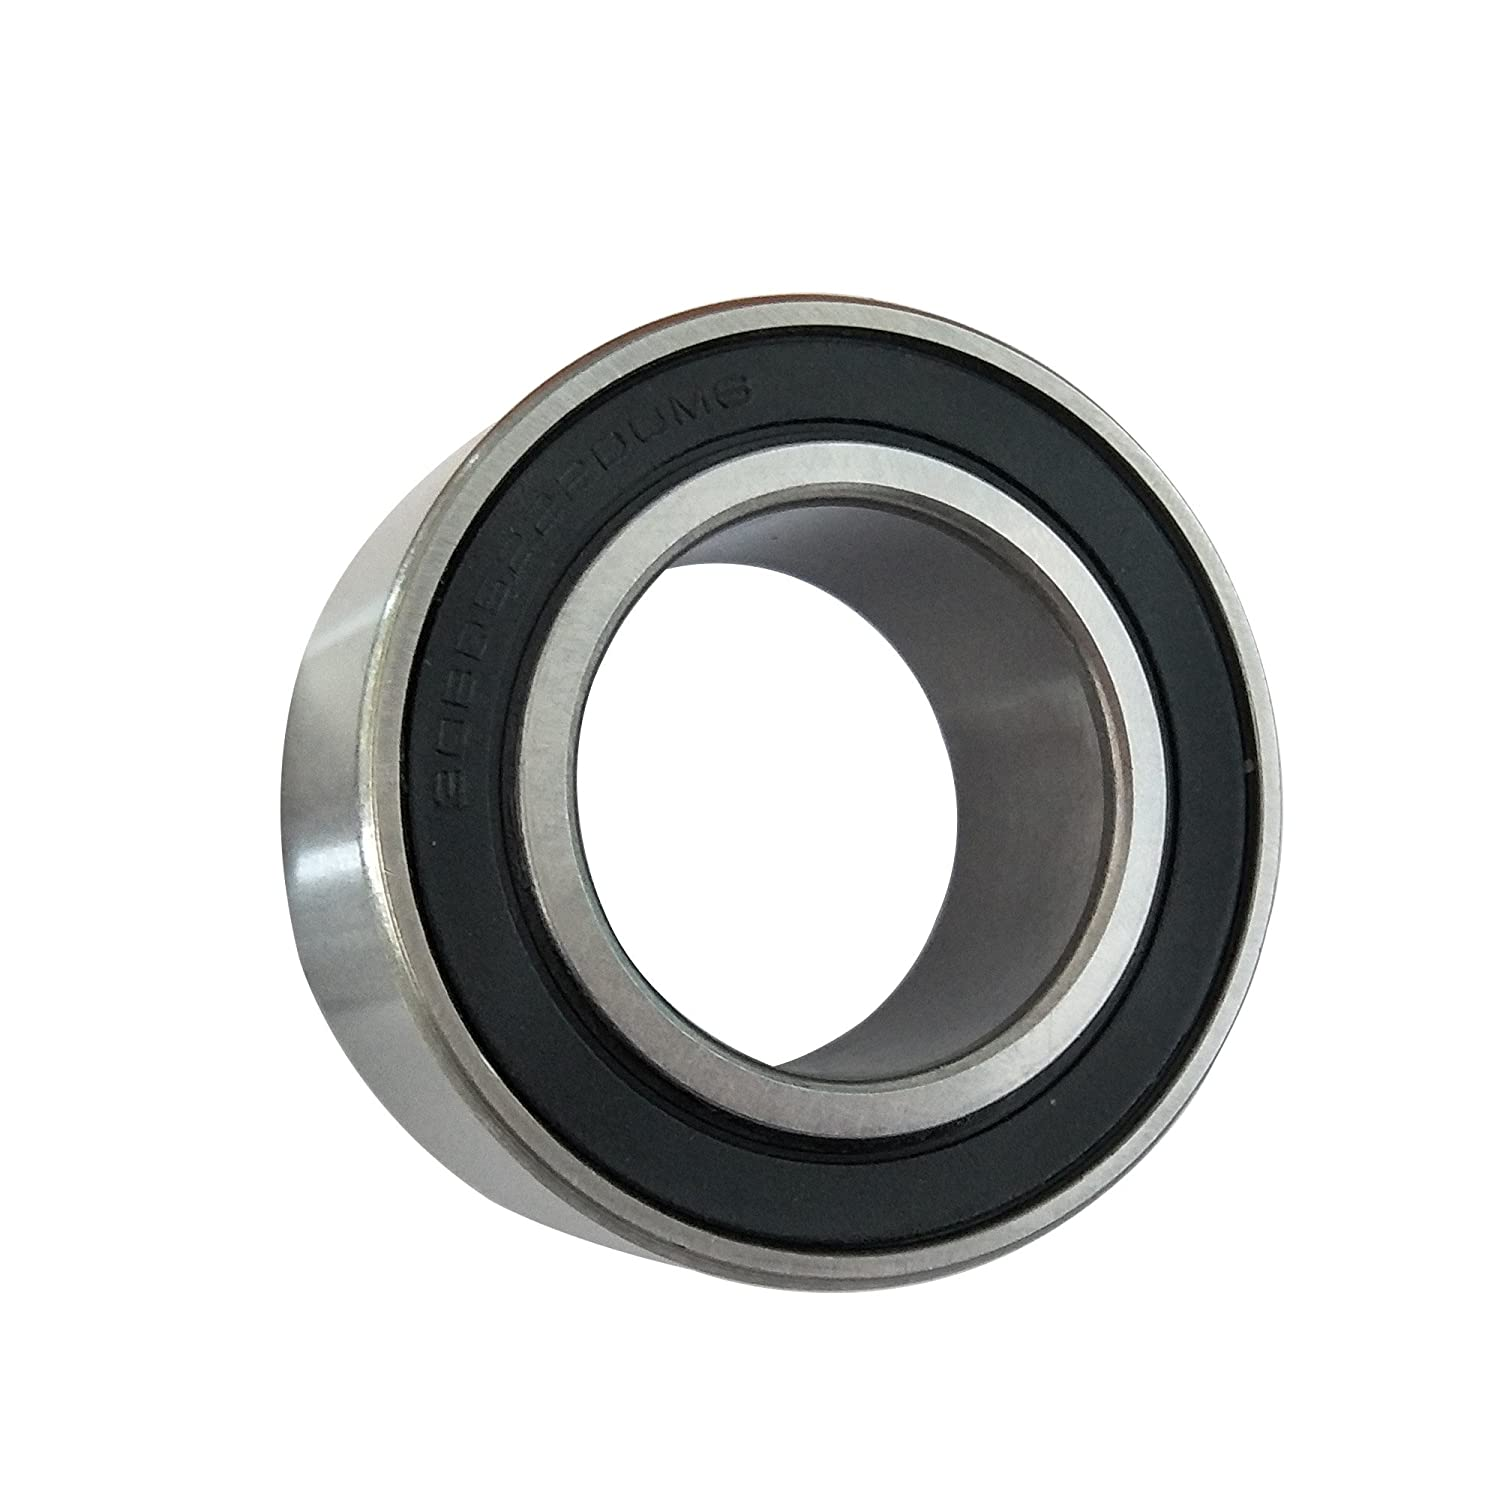 Wisepick AC Compressor Clutch Bearing for FORD HONDA TOYOTA NSK 30BD5222DUM6 30/×52/×22mm